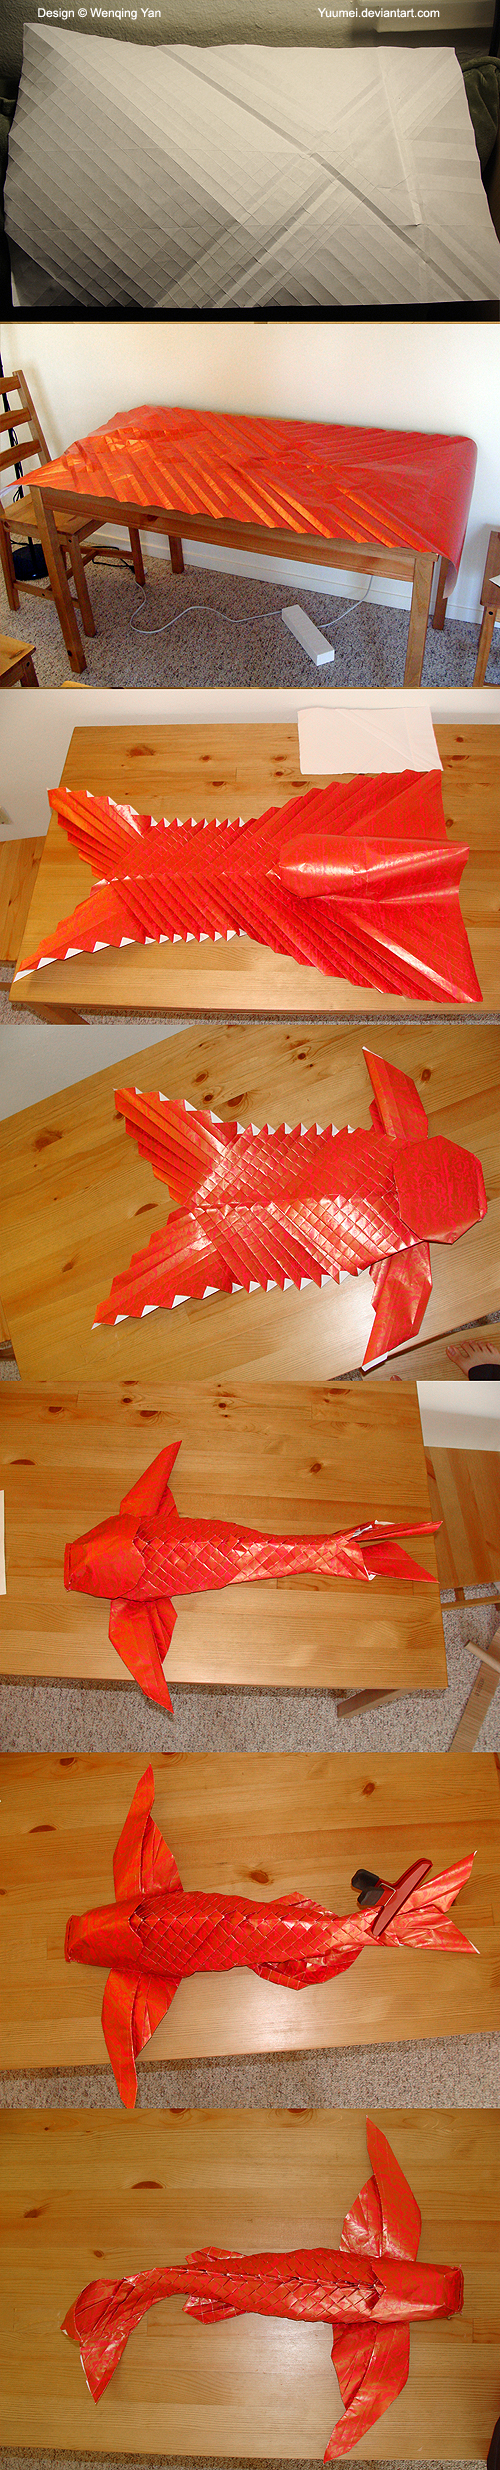 Origami winged koi process by yuumei on deviantart for Origami koi fish